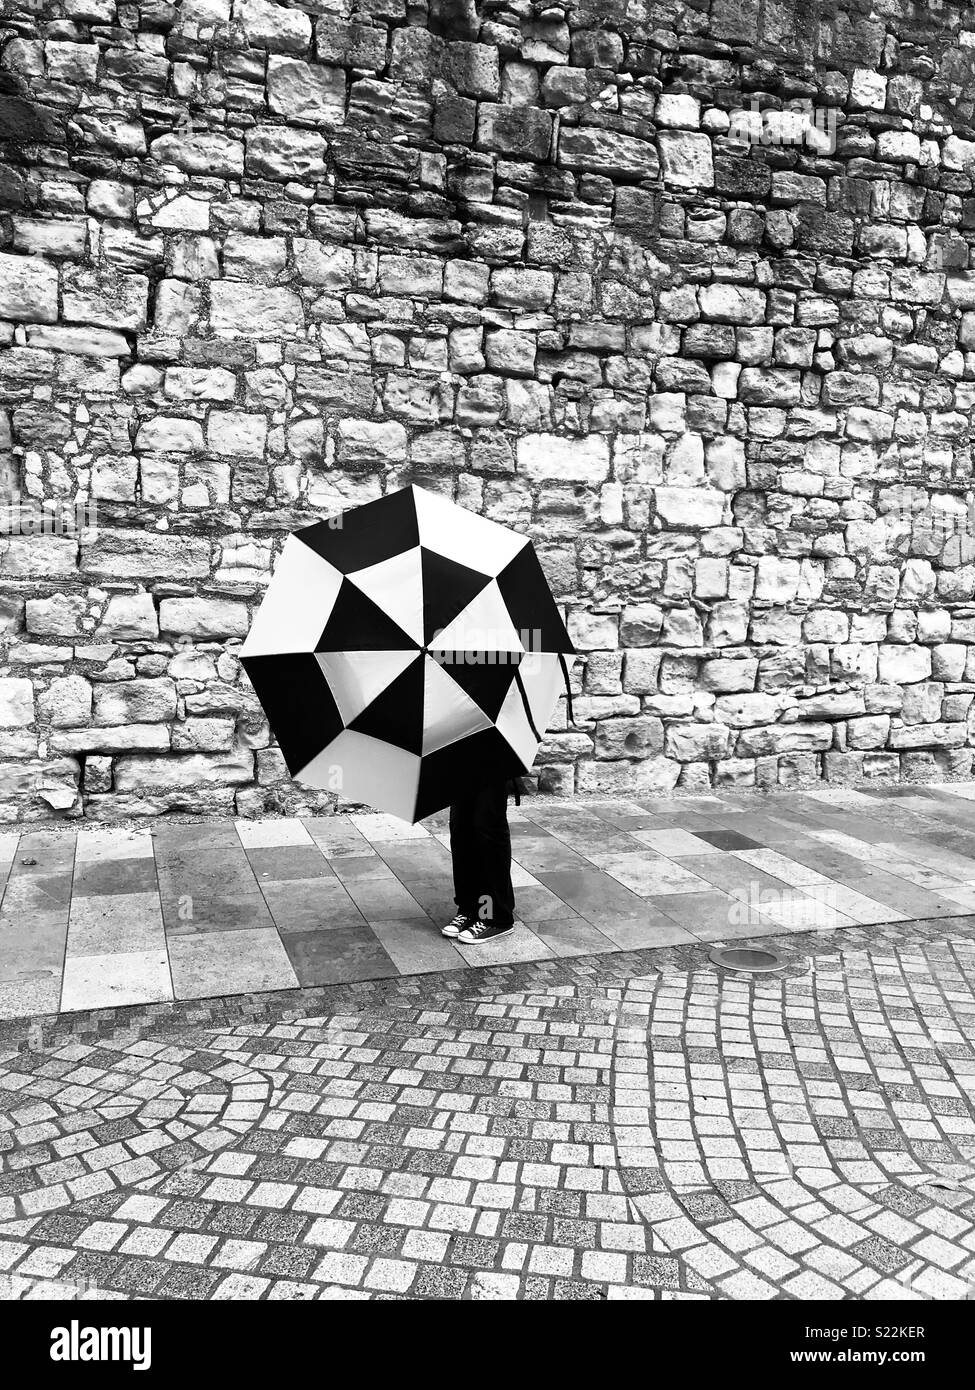 Photo session at the Old City Walls, Southampton, by the recently developed area adjacent to West Quay - Stock Image